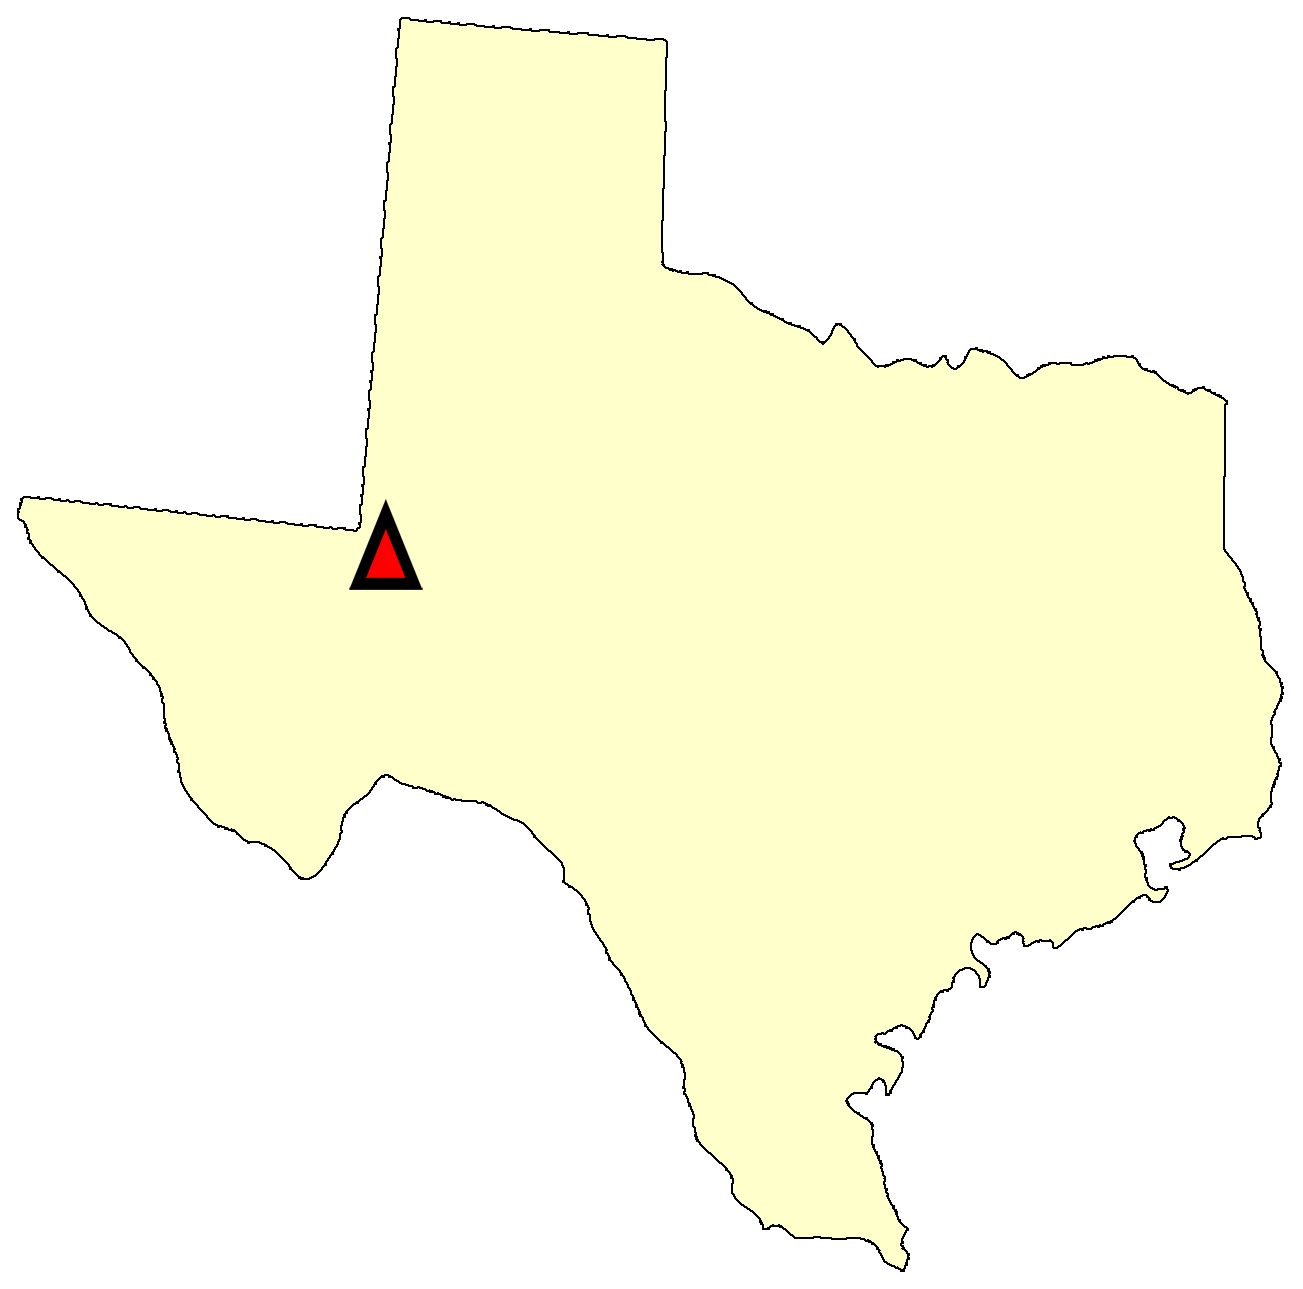 State map location for TX Monahans